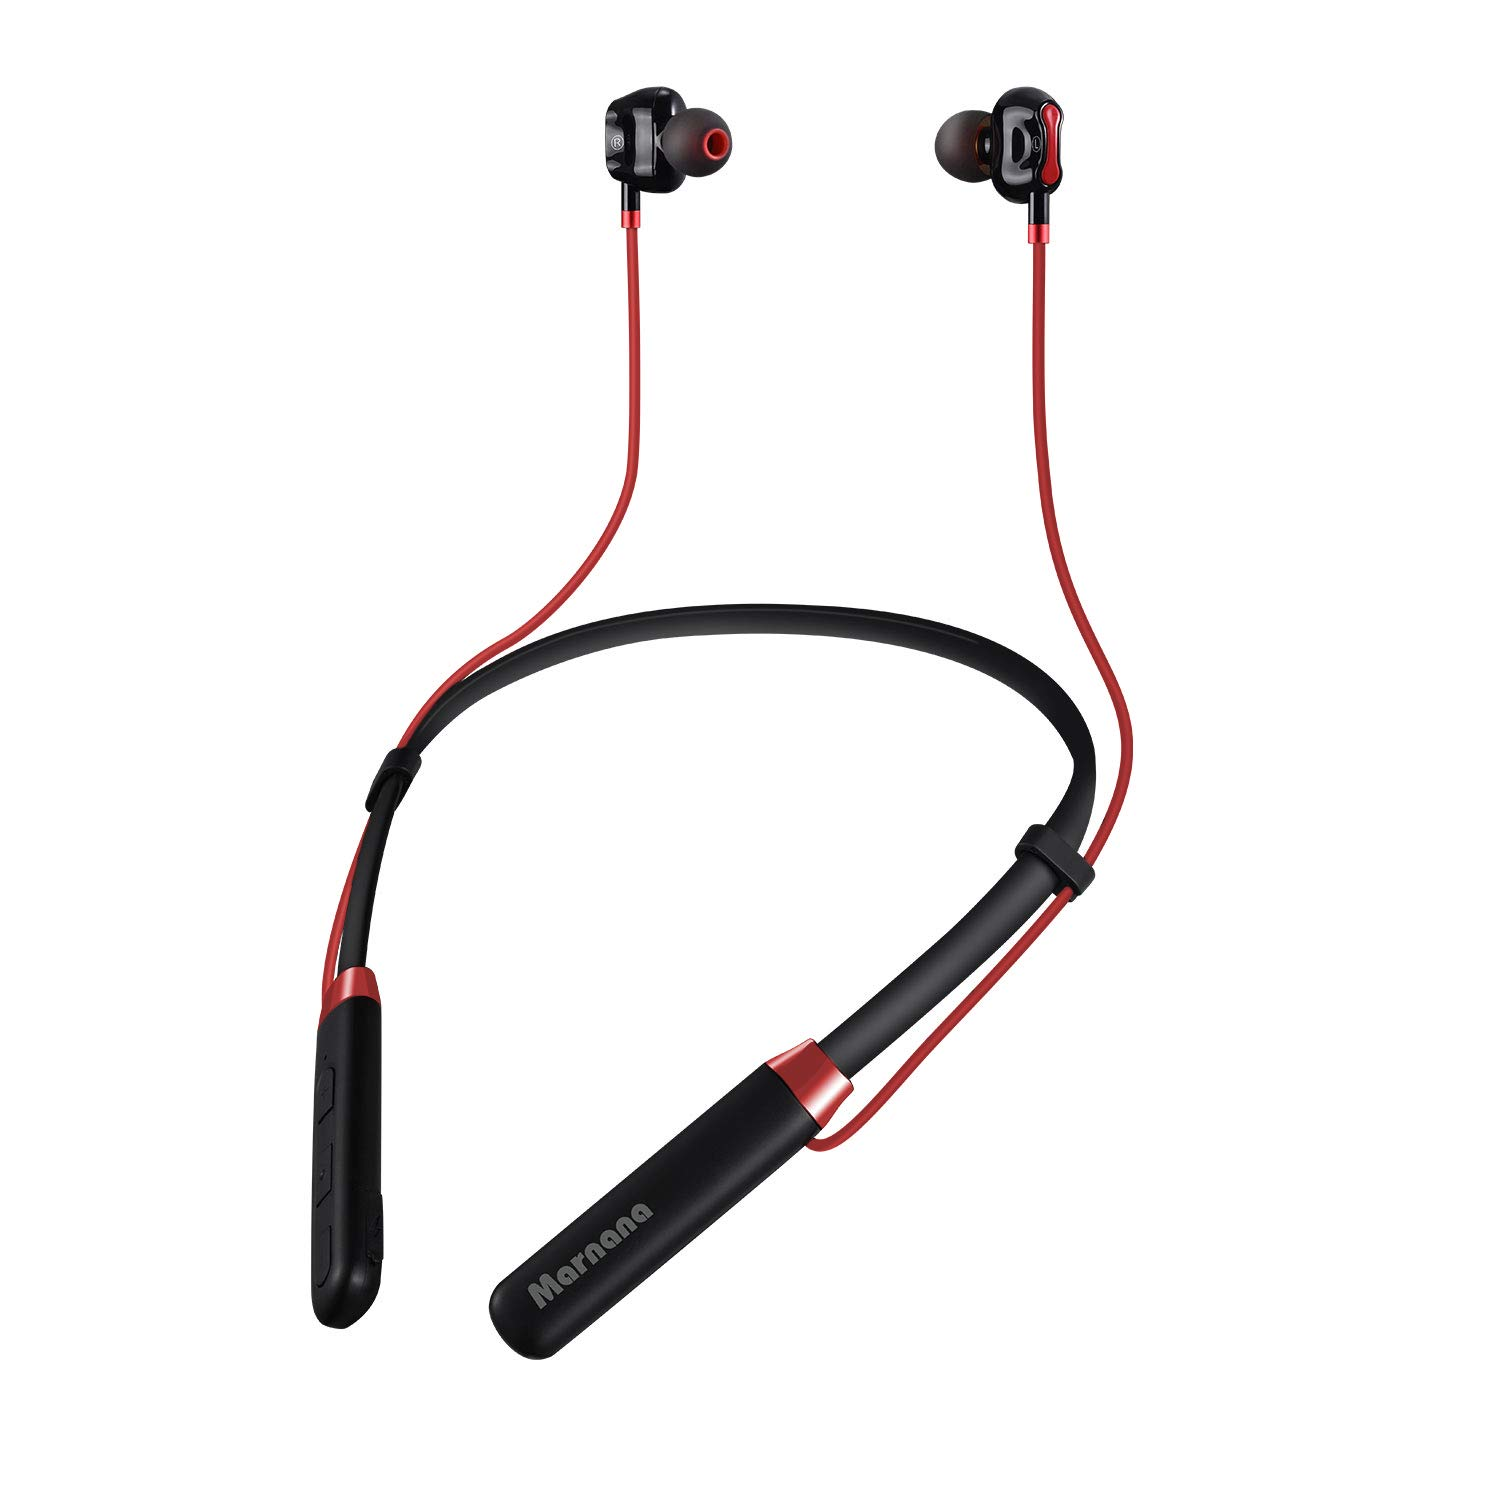 Bluetooth Headphones, Marnana Neckband Dual Dynamic Drivers Wireless Sports Earphones with CVC6.0 Mic, IPX5 Water-Resistant Magnetic in-Ear Earbuds for Running Gym Workout iPhone Samsung Android - Red